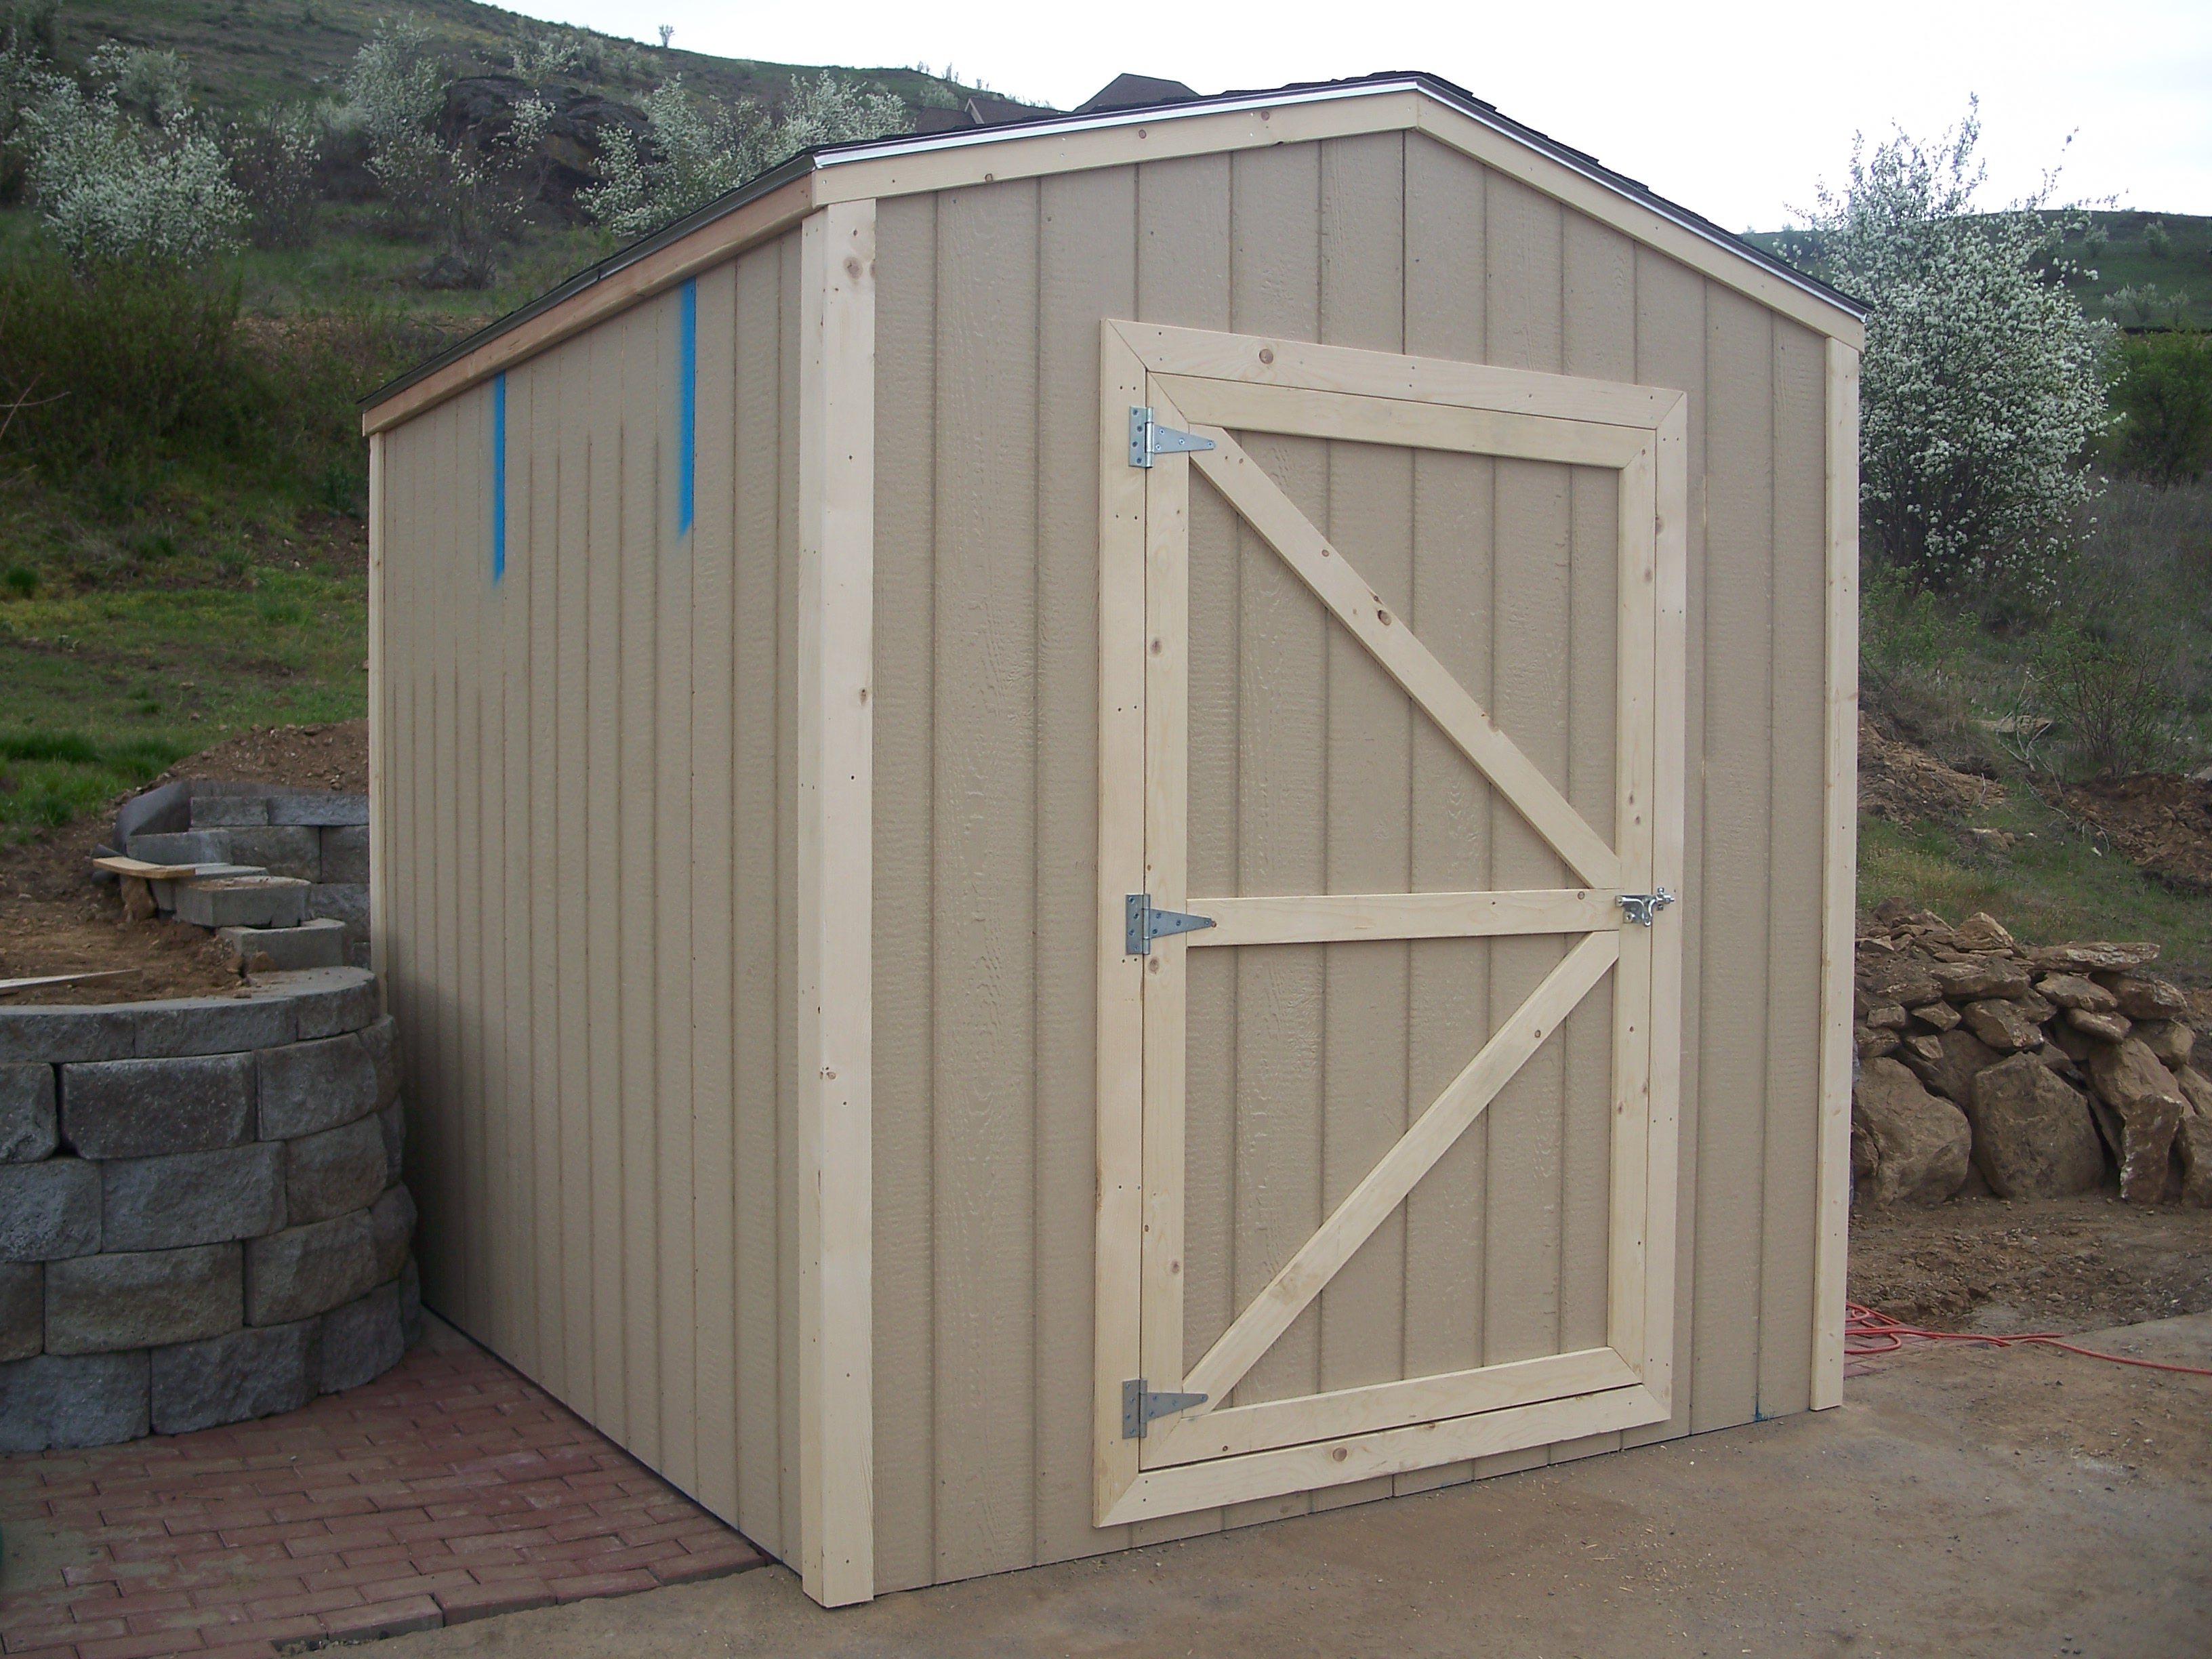 Building A Shed Door : Diy Shed Plans – Do It Yourself Shed Building | Shed Plans Kits